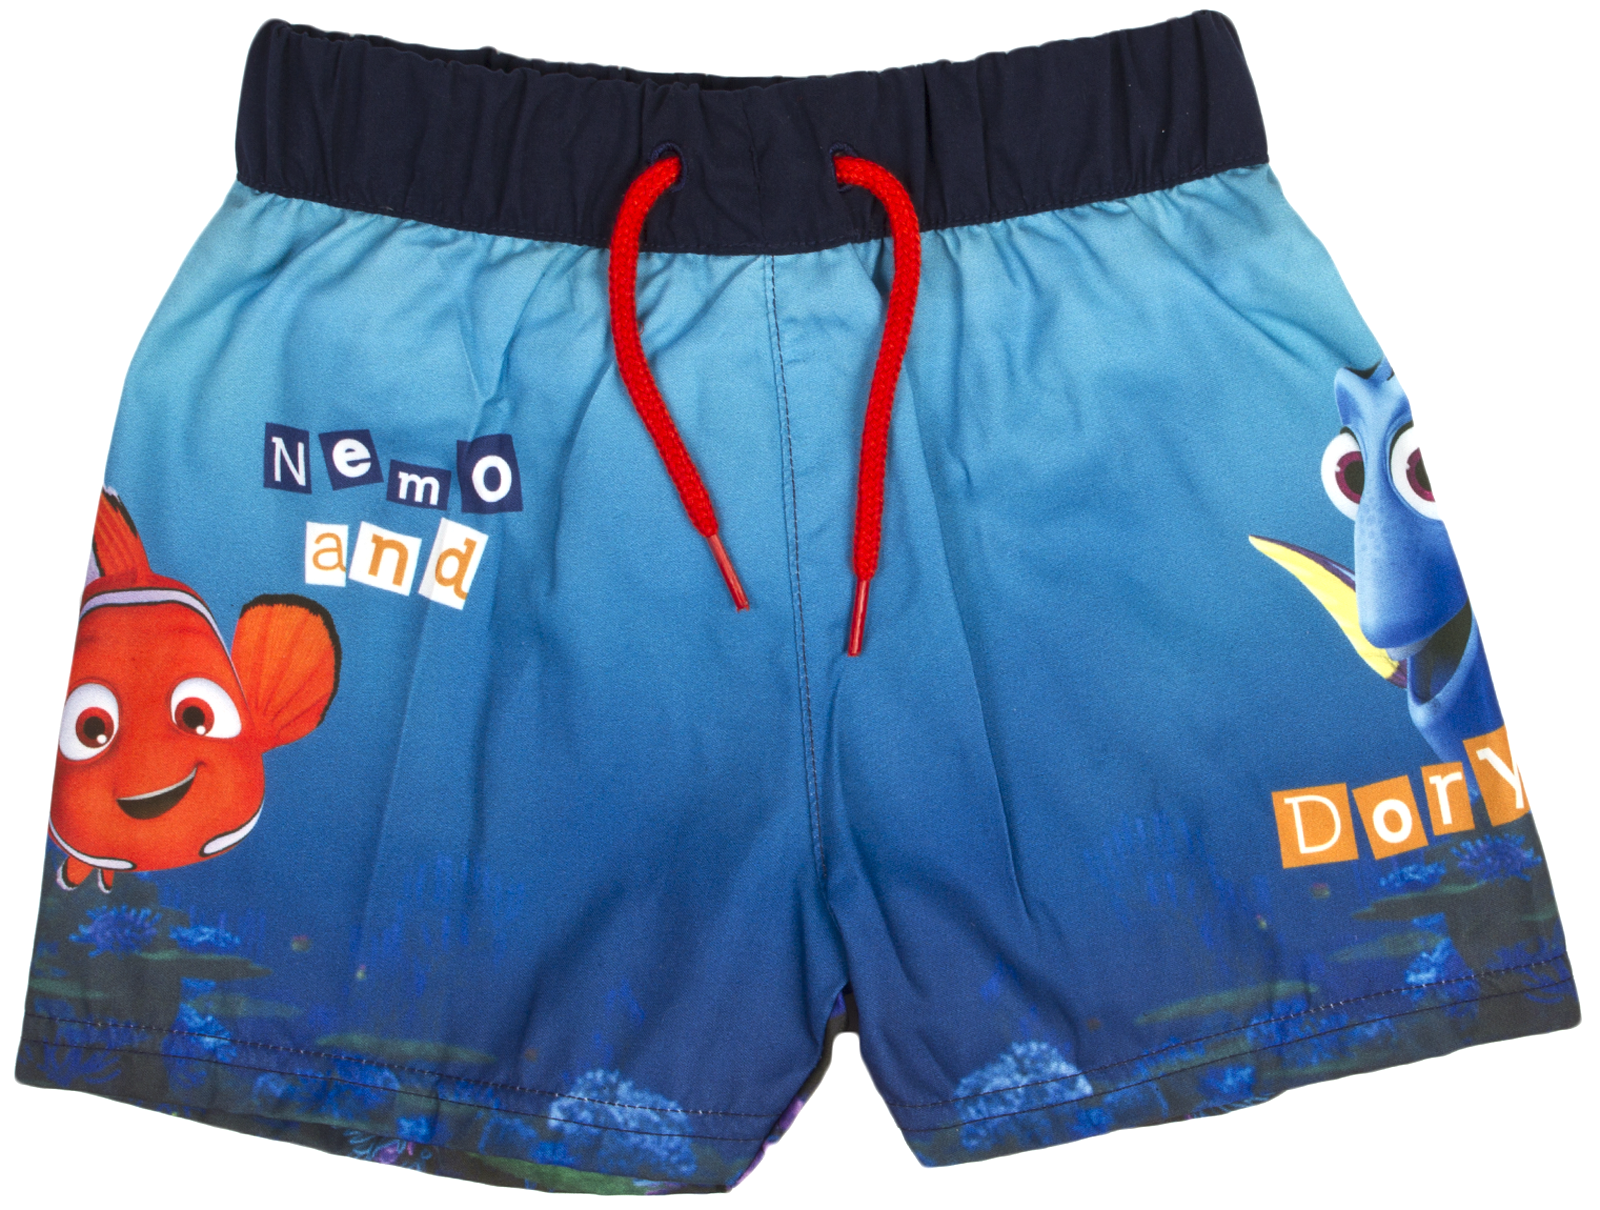 The Best Type of Swimming Shorts For You